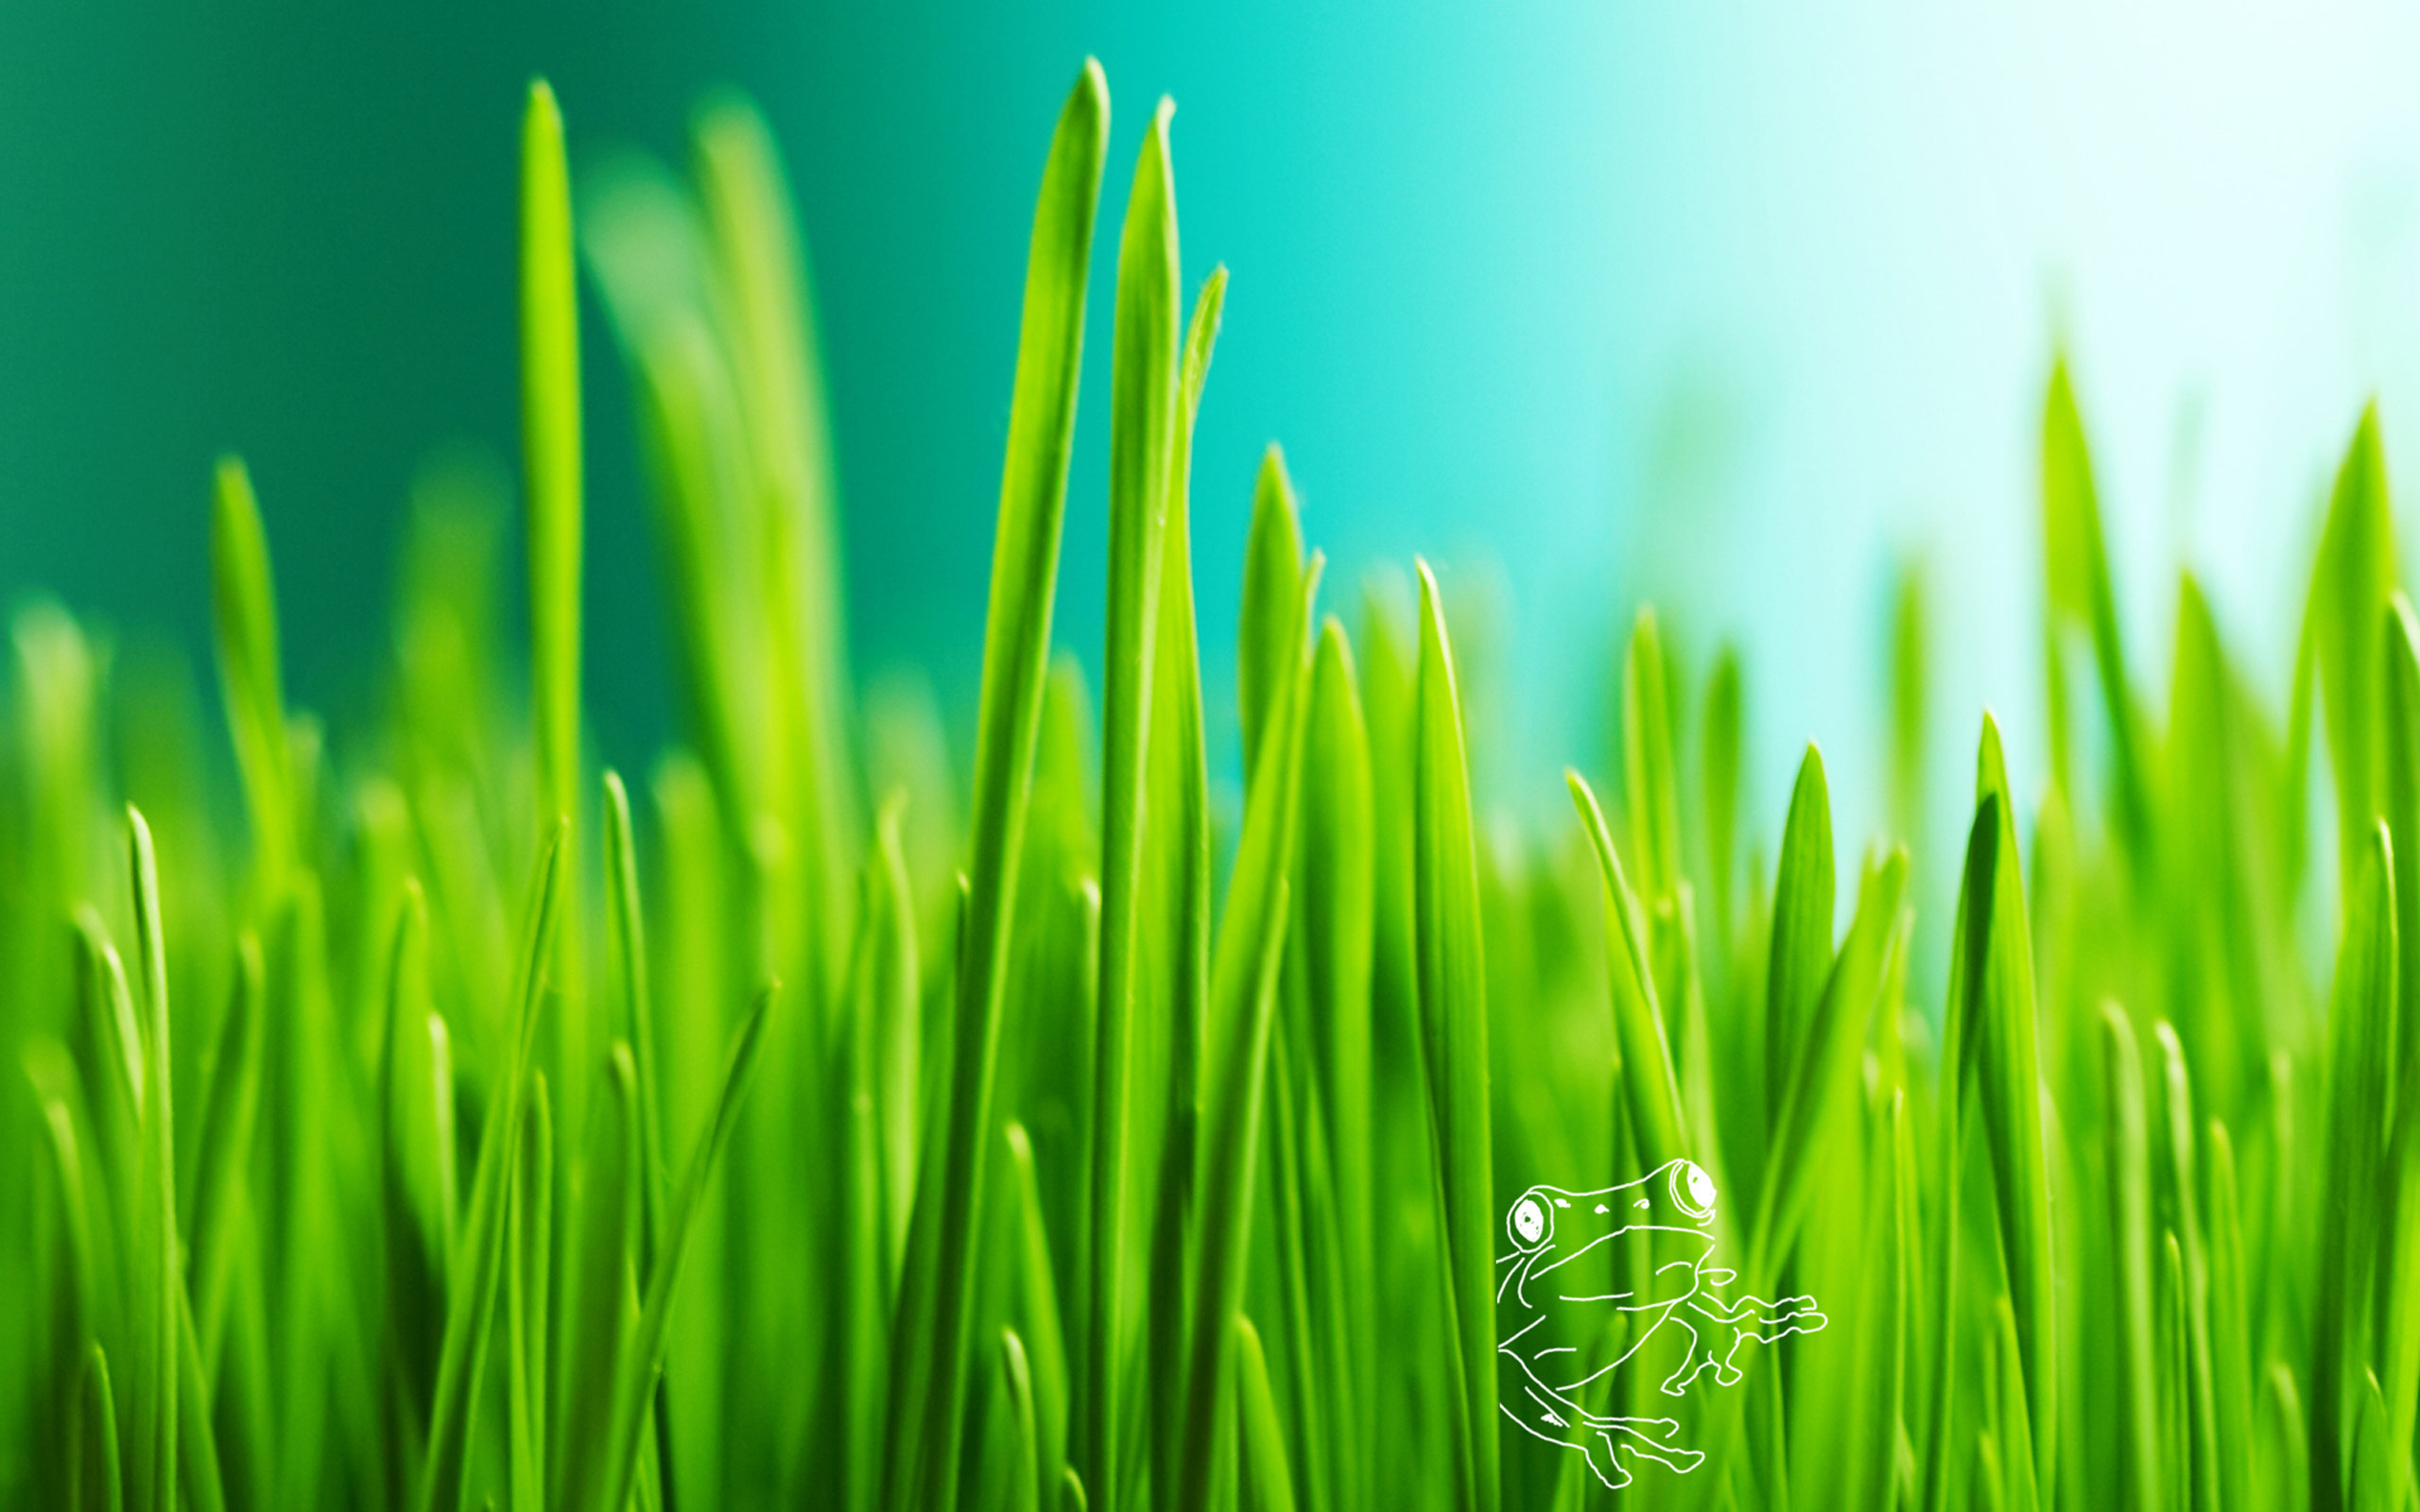 27499123 Free Grass Full HD Quality Wallpapers - 2560x1600 px